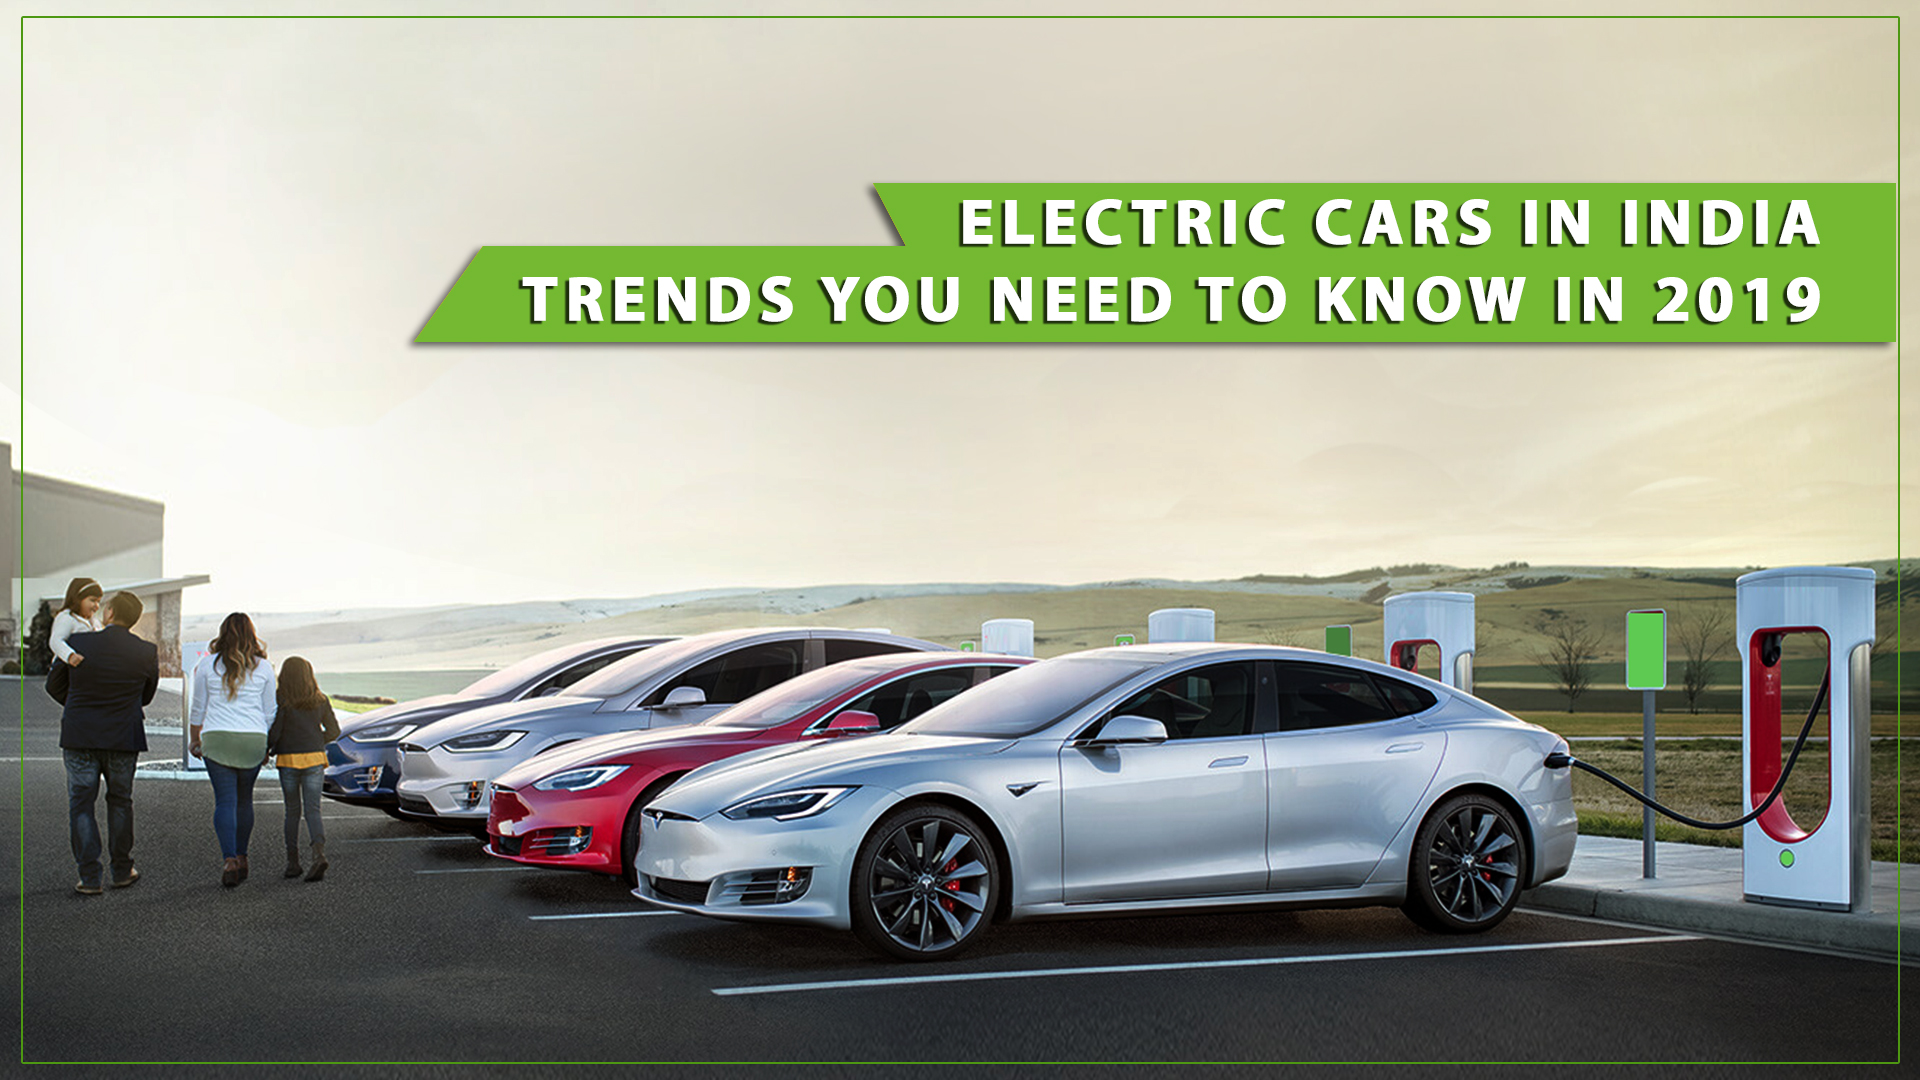 Electric Cars: Trends You Need To Know in 2019